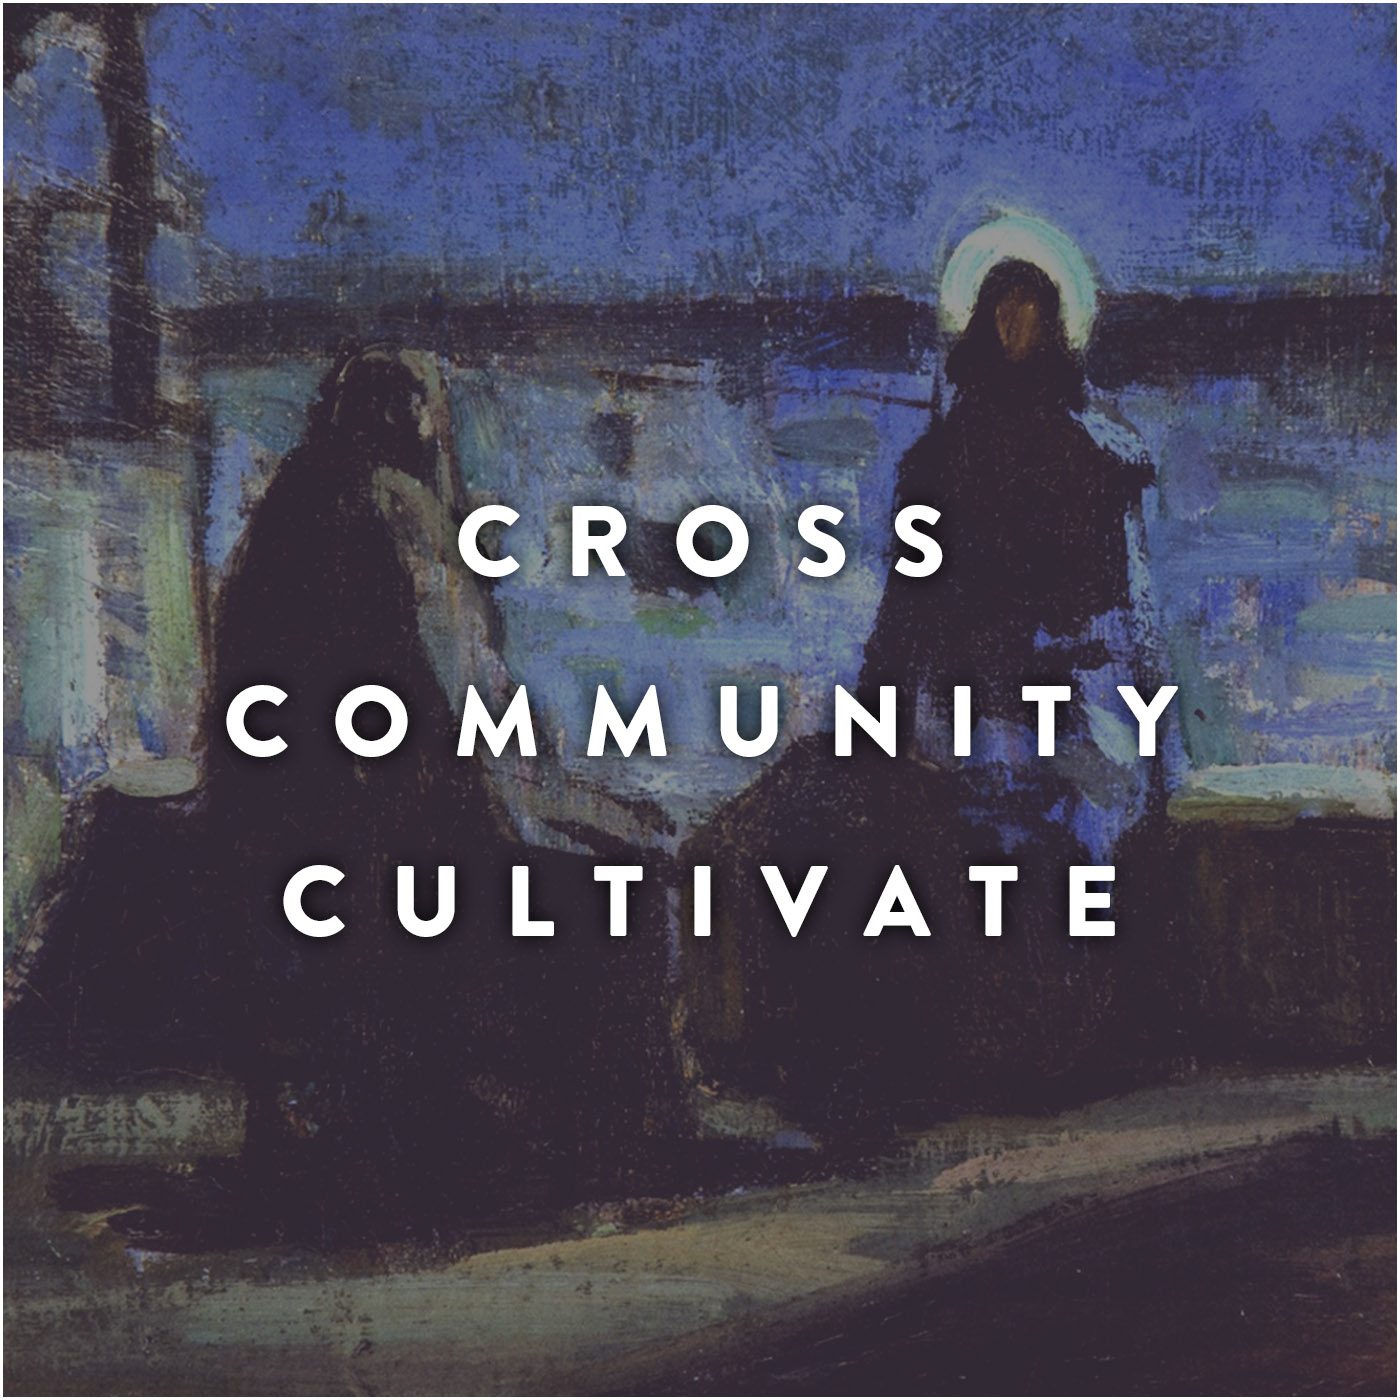 Our Cross Community Cultivate Sermon Series in 2018 was on the mission and vision of our church. At Rockwall Pres, we are a church on mission learning to love God and love others.